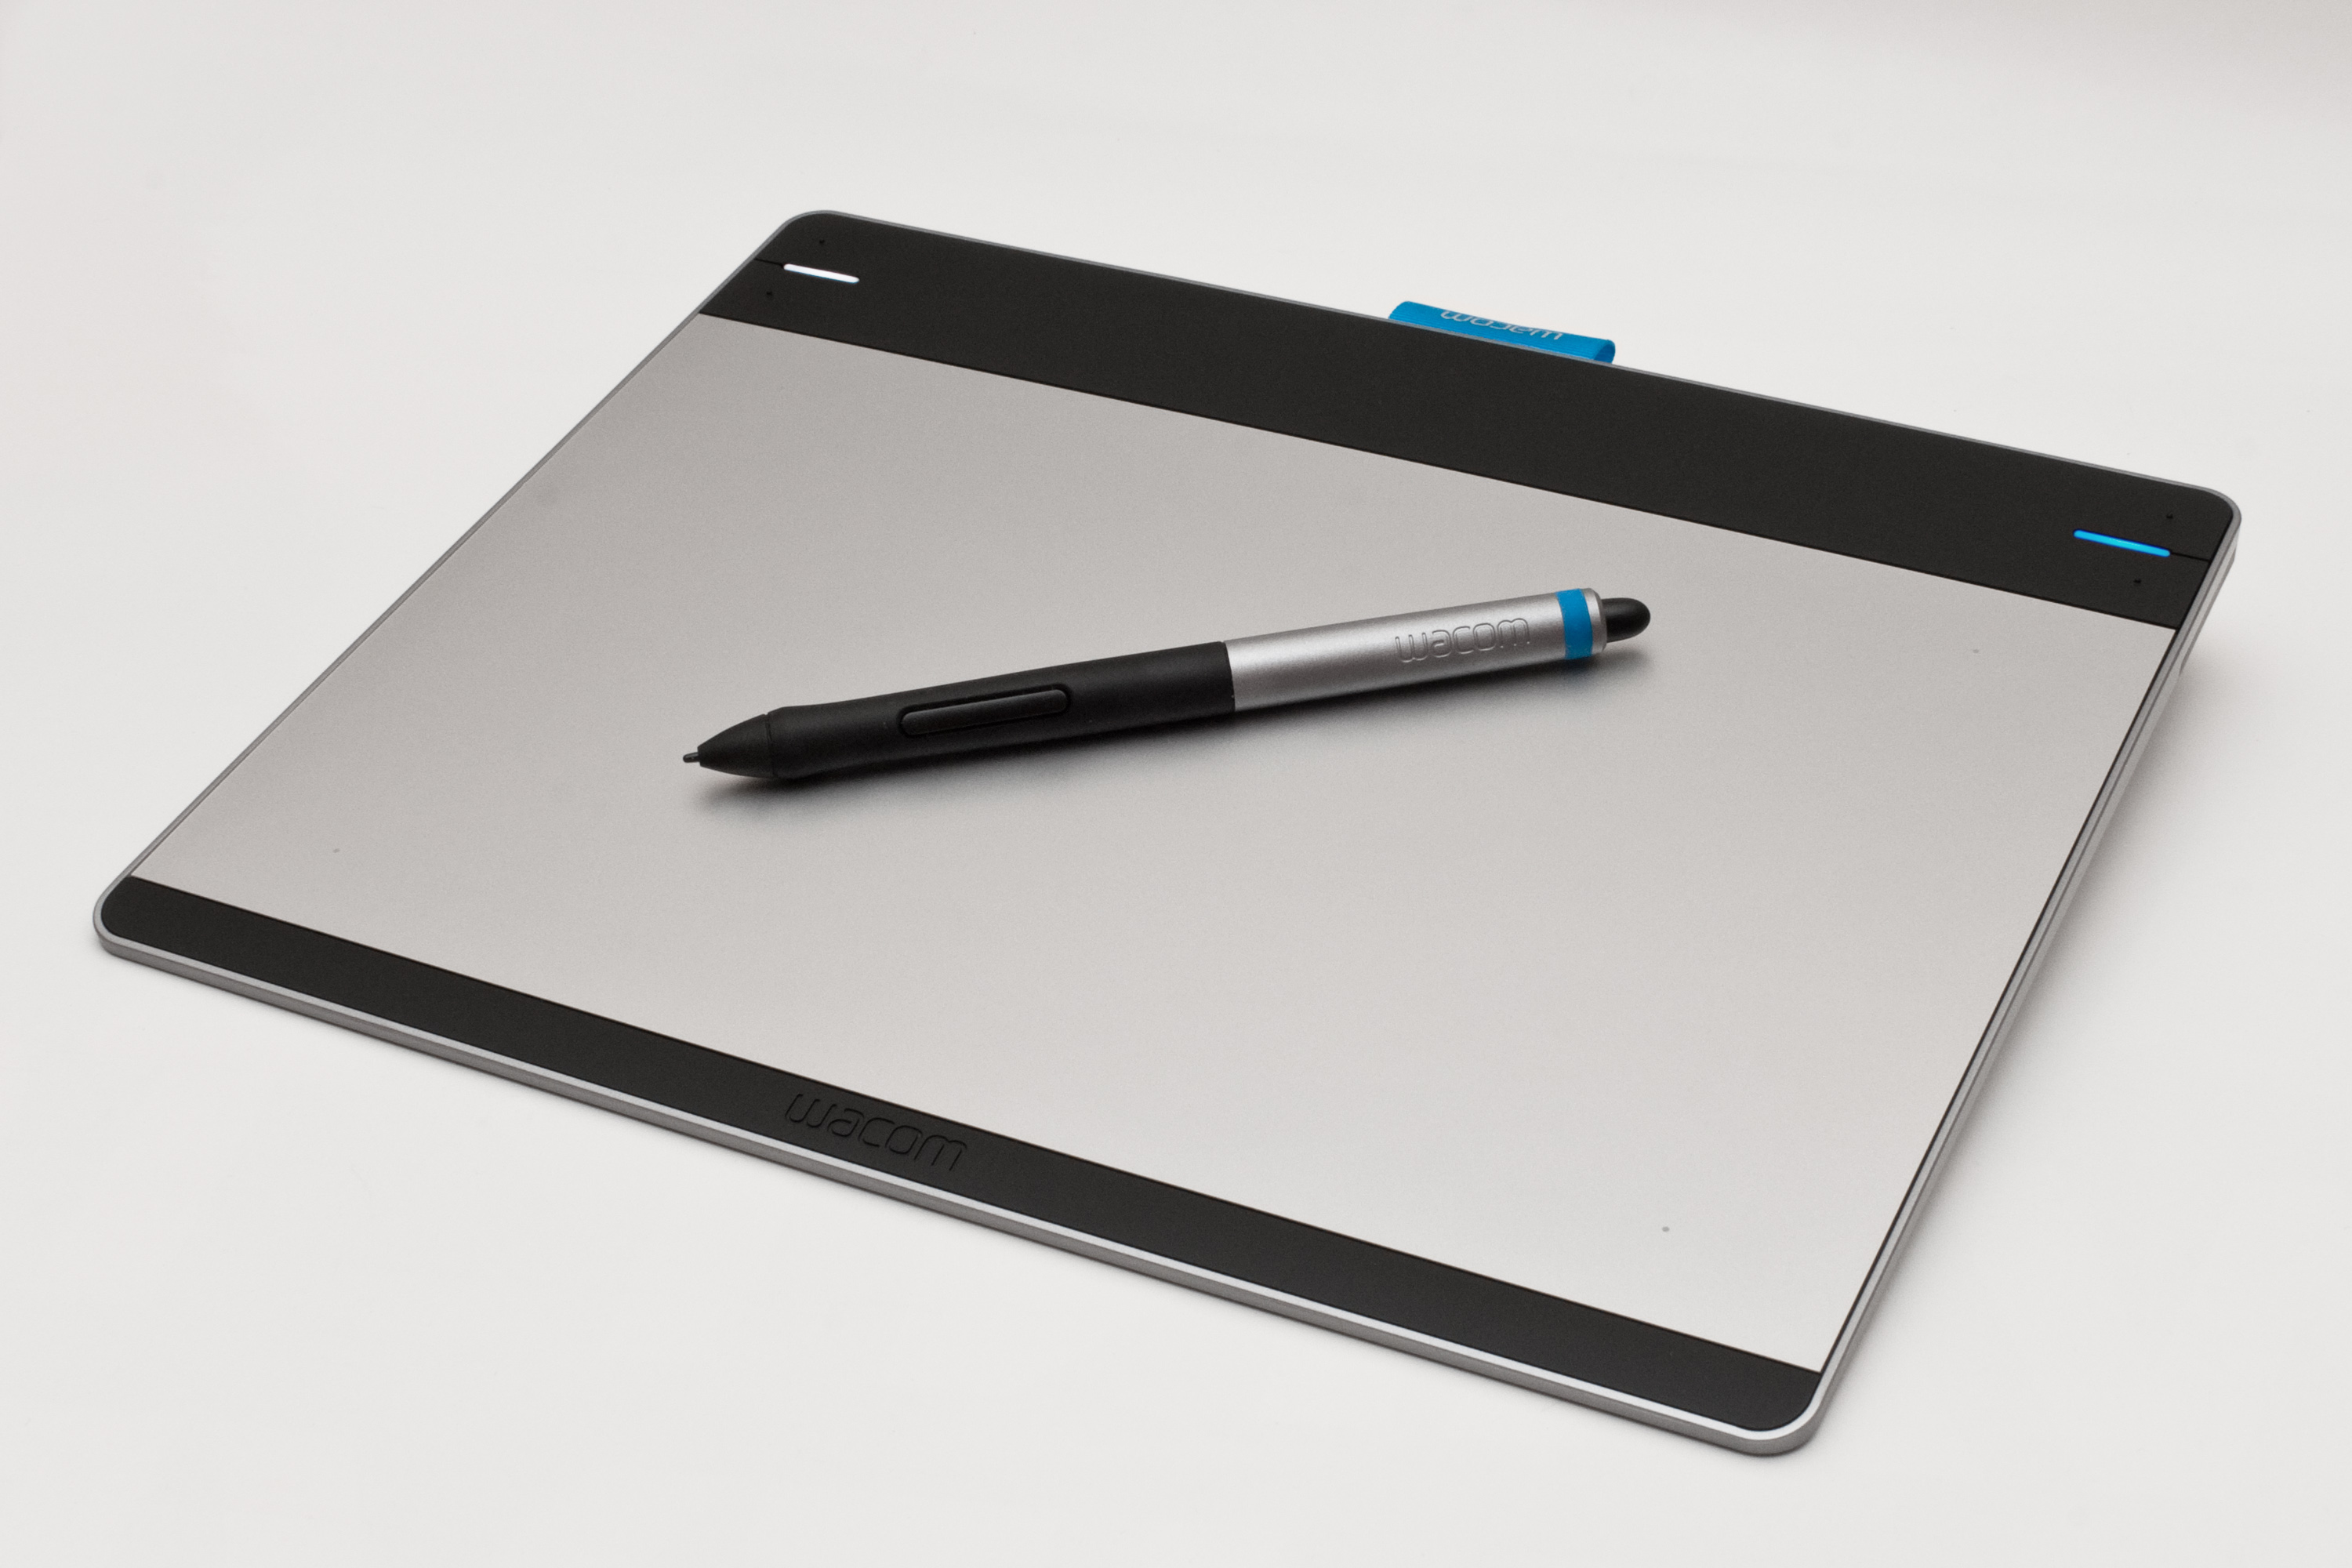 Wacom Intuos Pen and Touch 2013 Tablet Windows 8 X64 Driver Download